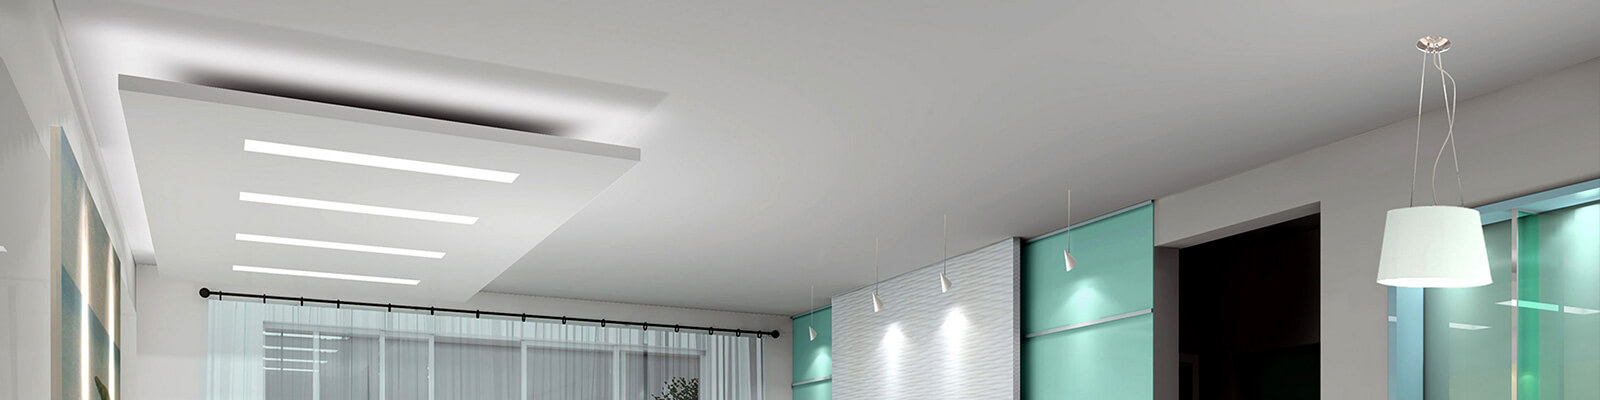 High Quality Ceilings And Lighting Solutions Nigeria